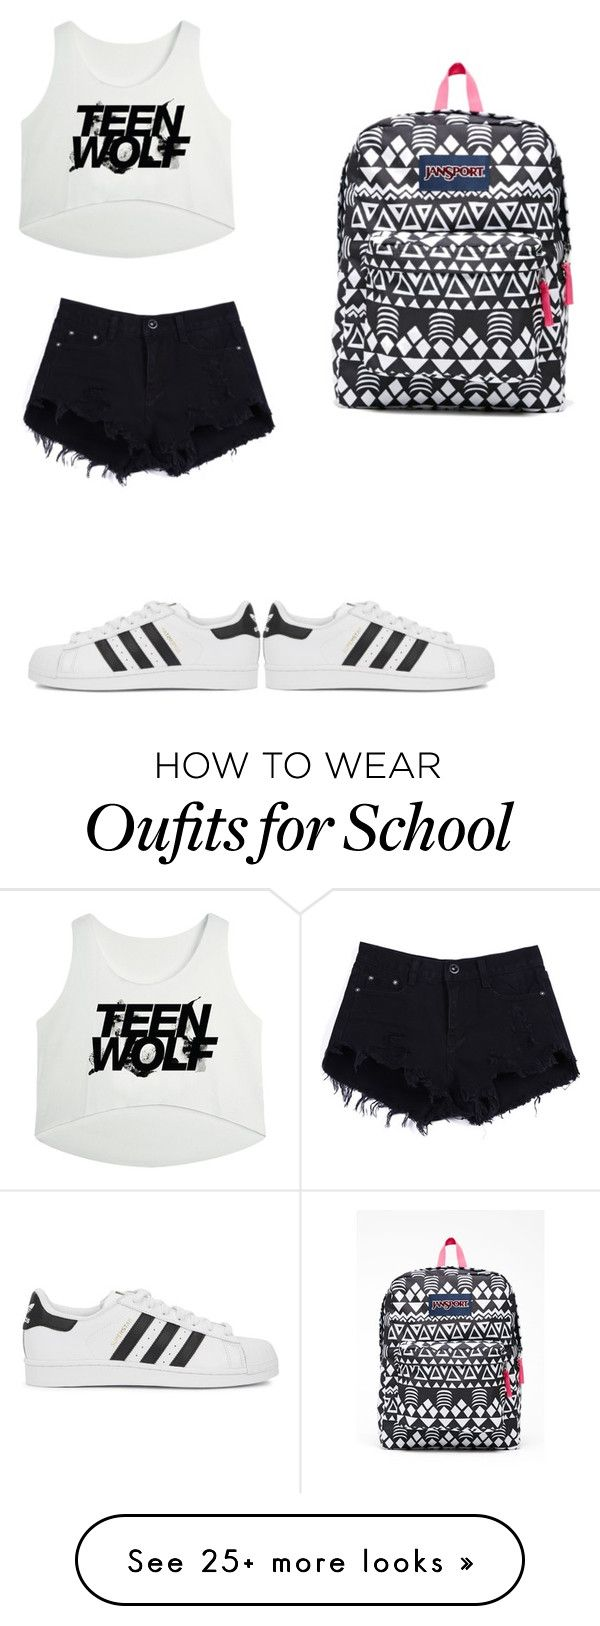 """Untitled #296"" by anna-diva-clara on Polyvore featuring JanSport, adidas Originals, women's clothing, women, female, woman, misses and juniors"